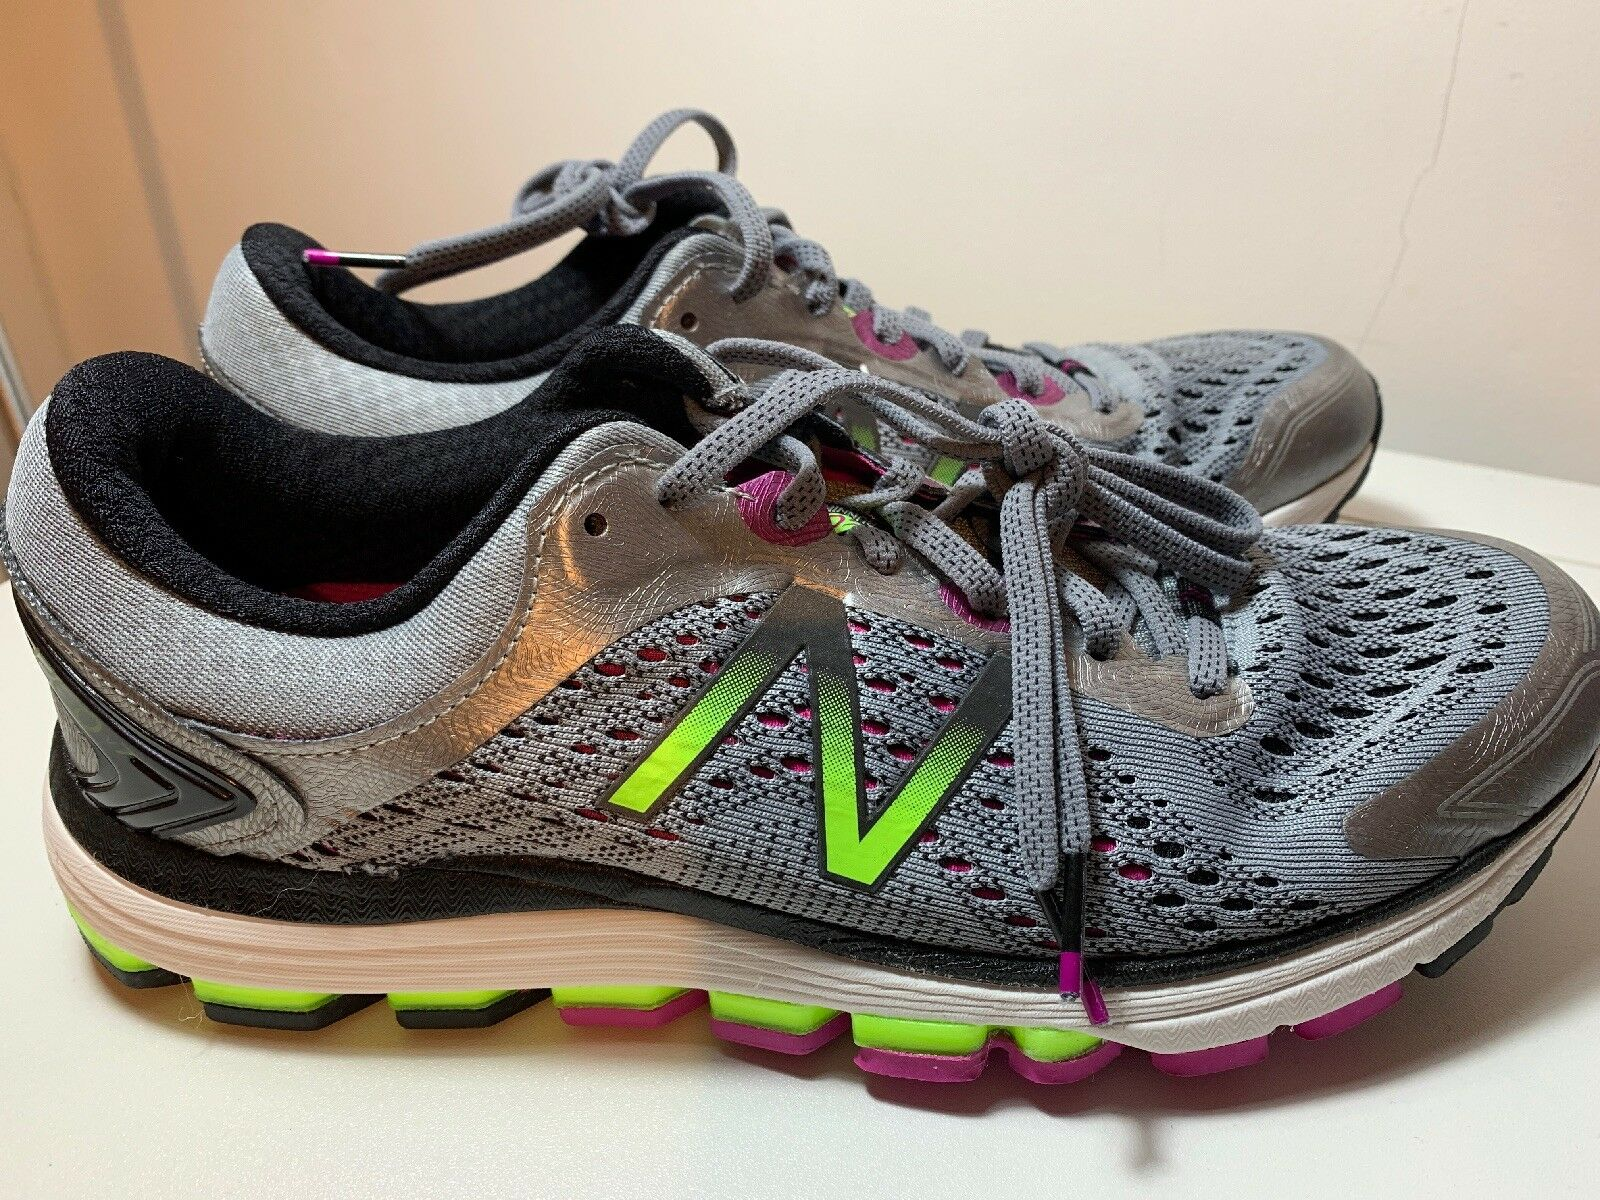 New Balance Damenschuhe 1260v7 Running Trainers Road Schuhes Lace Up Breathable Padded